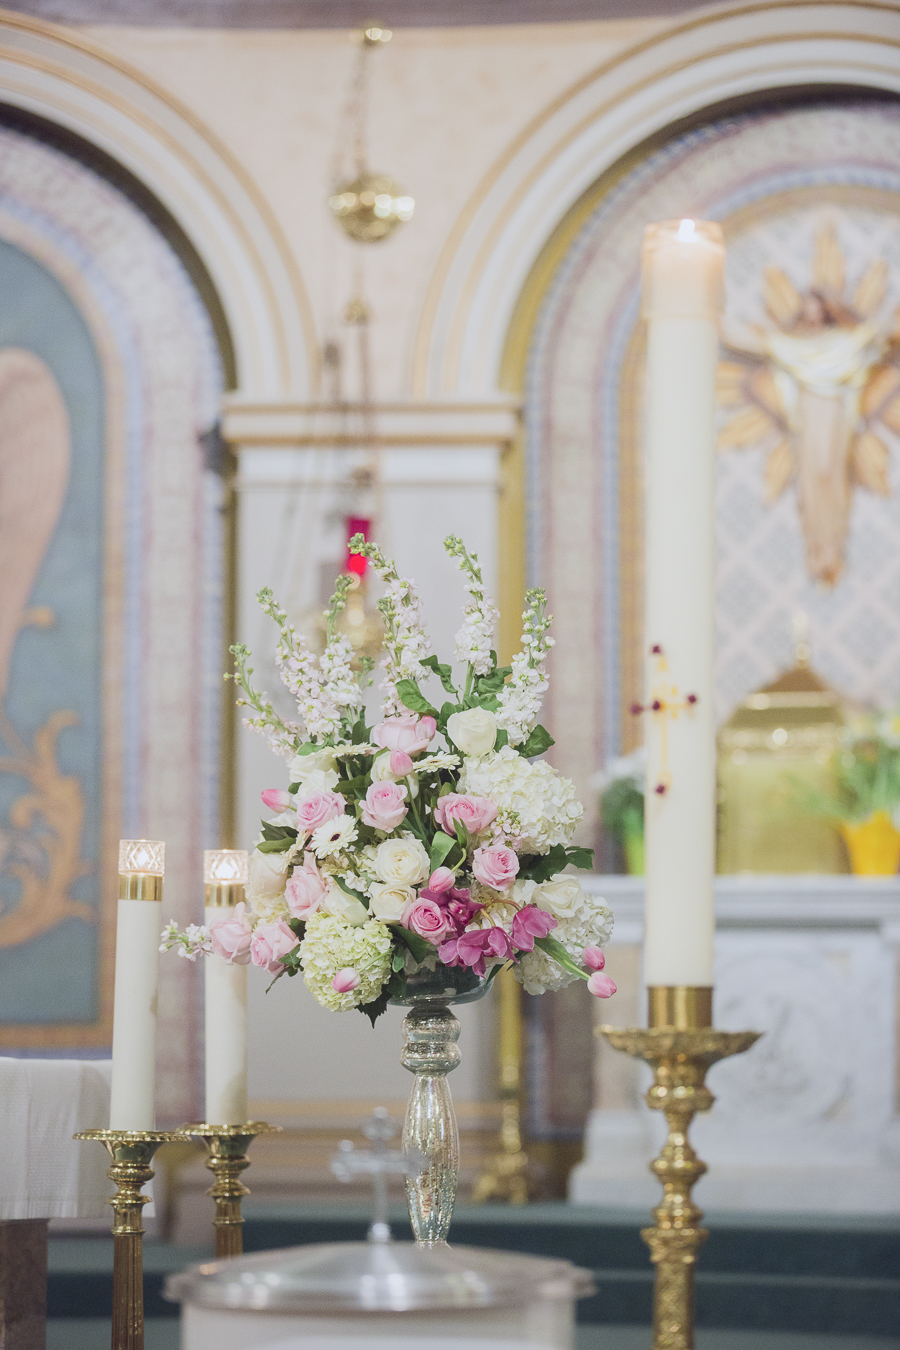 Romantic pink and white floral arrangement at the wedding ceremony. See more at Rebecca Chan Weddings and Events http://www.rebeccachan.ca